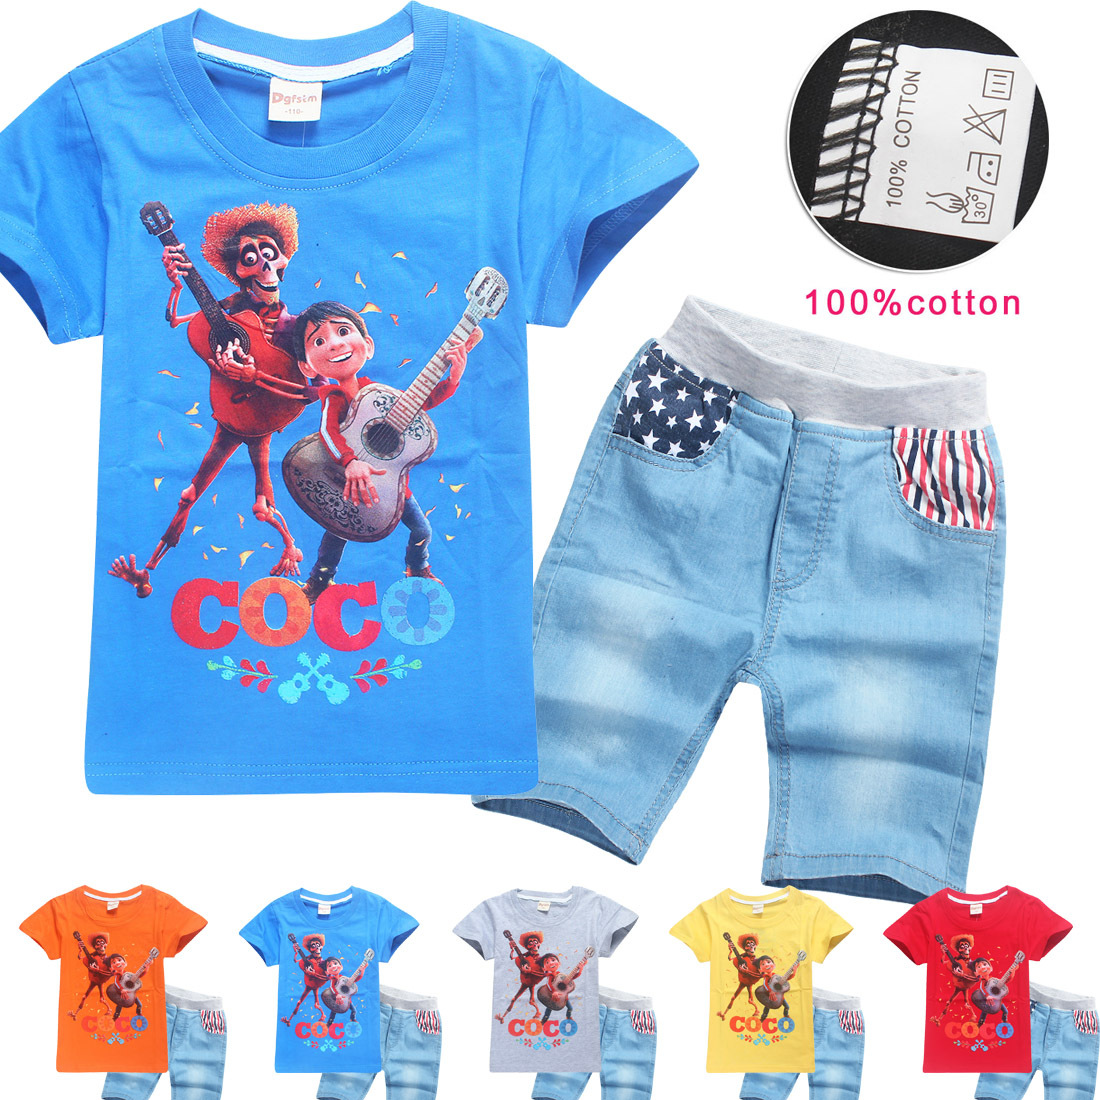 2018 Cotton Wear Kids summer Set COCO children T Shirts and Jeans Baby Boys Girls Short Sleeve Blouse Clothes children's set new fashion kids clothes set baby boys summer 2pcs set short sleeve t shirt and striped short outfit children set